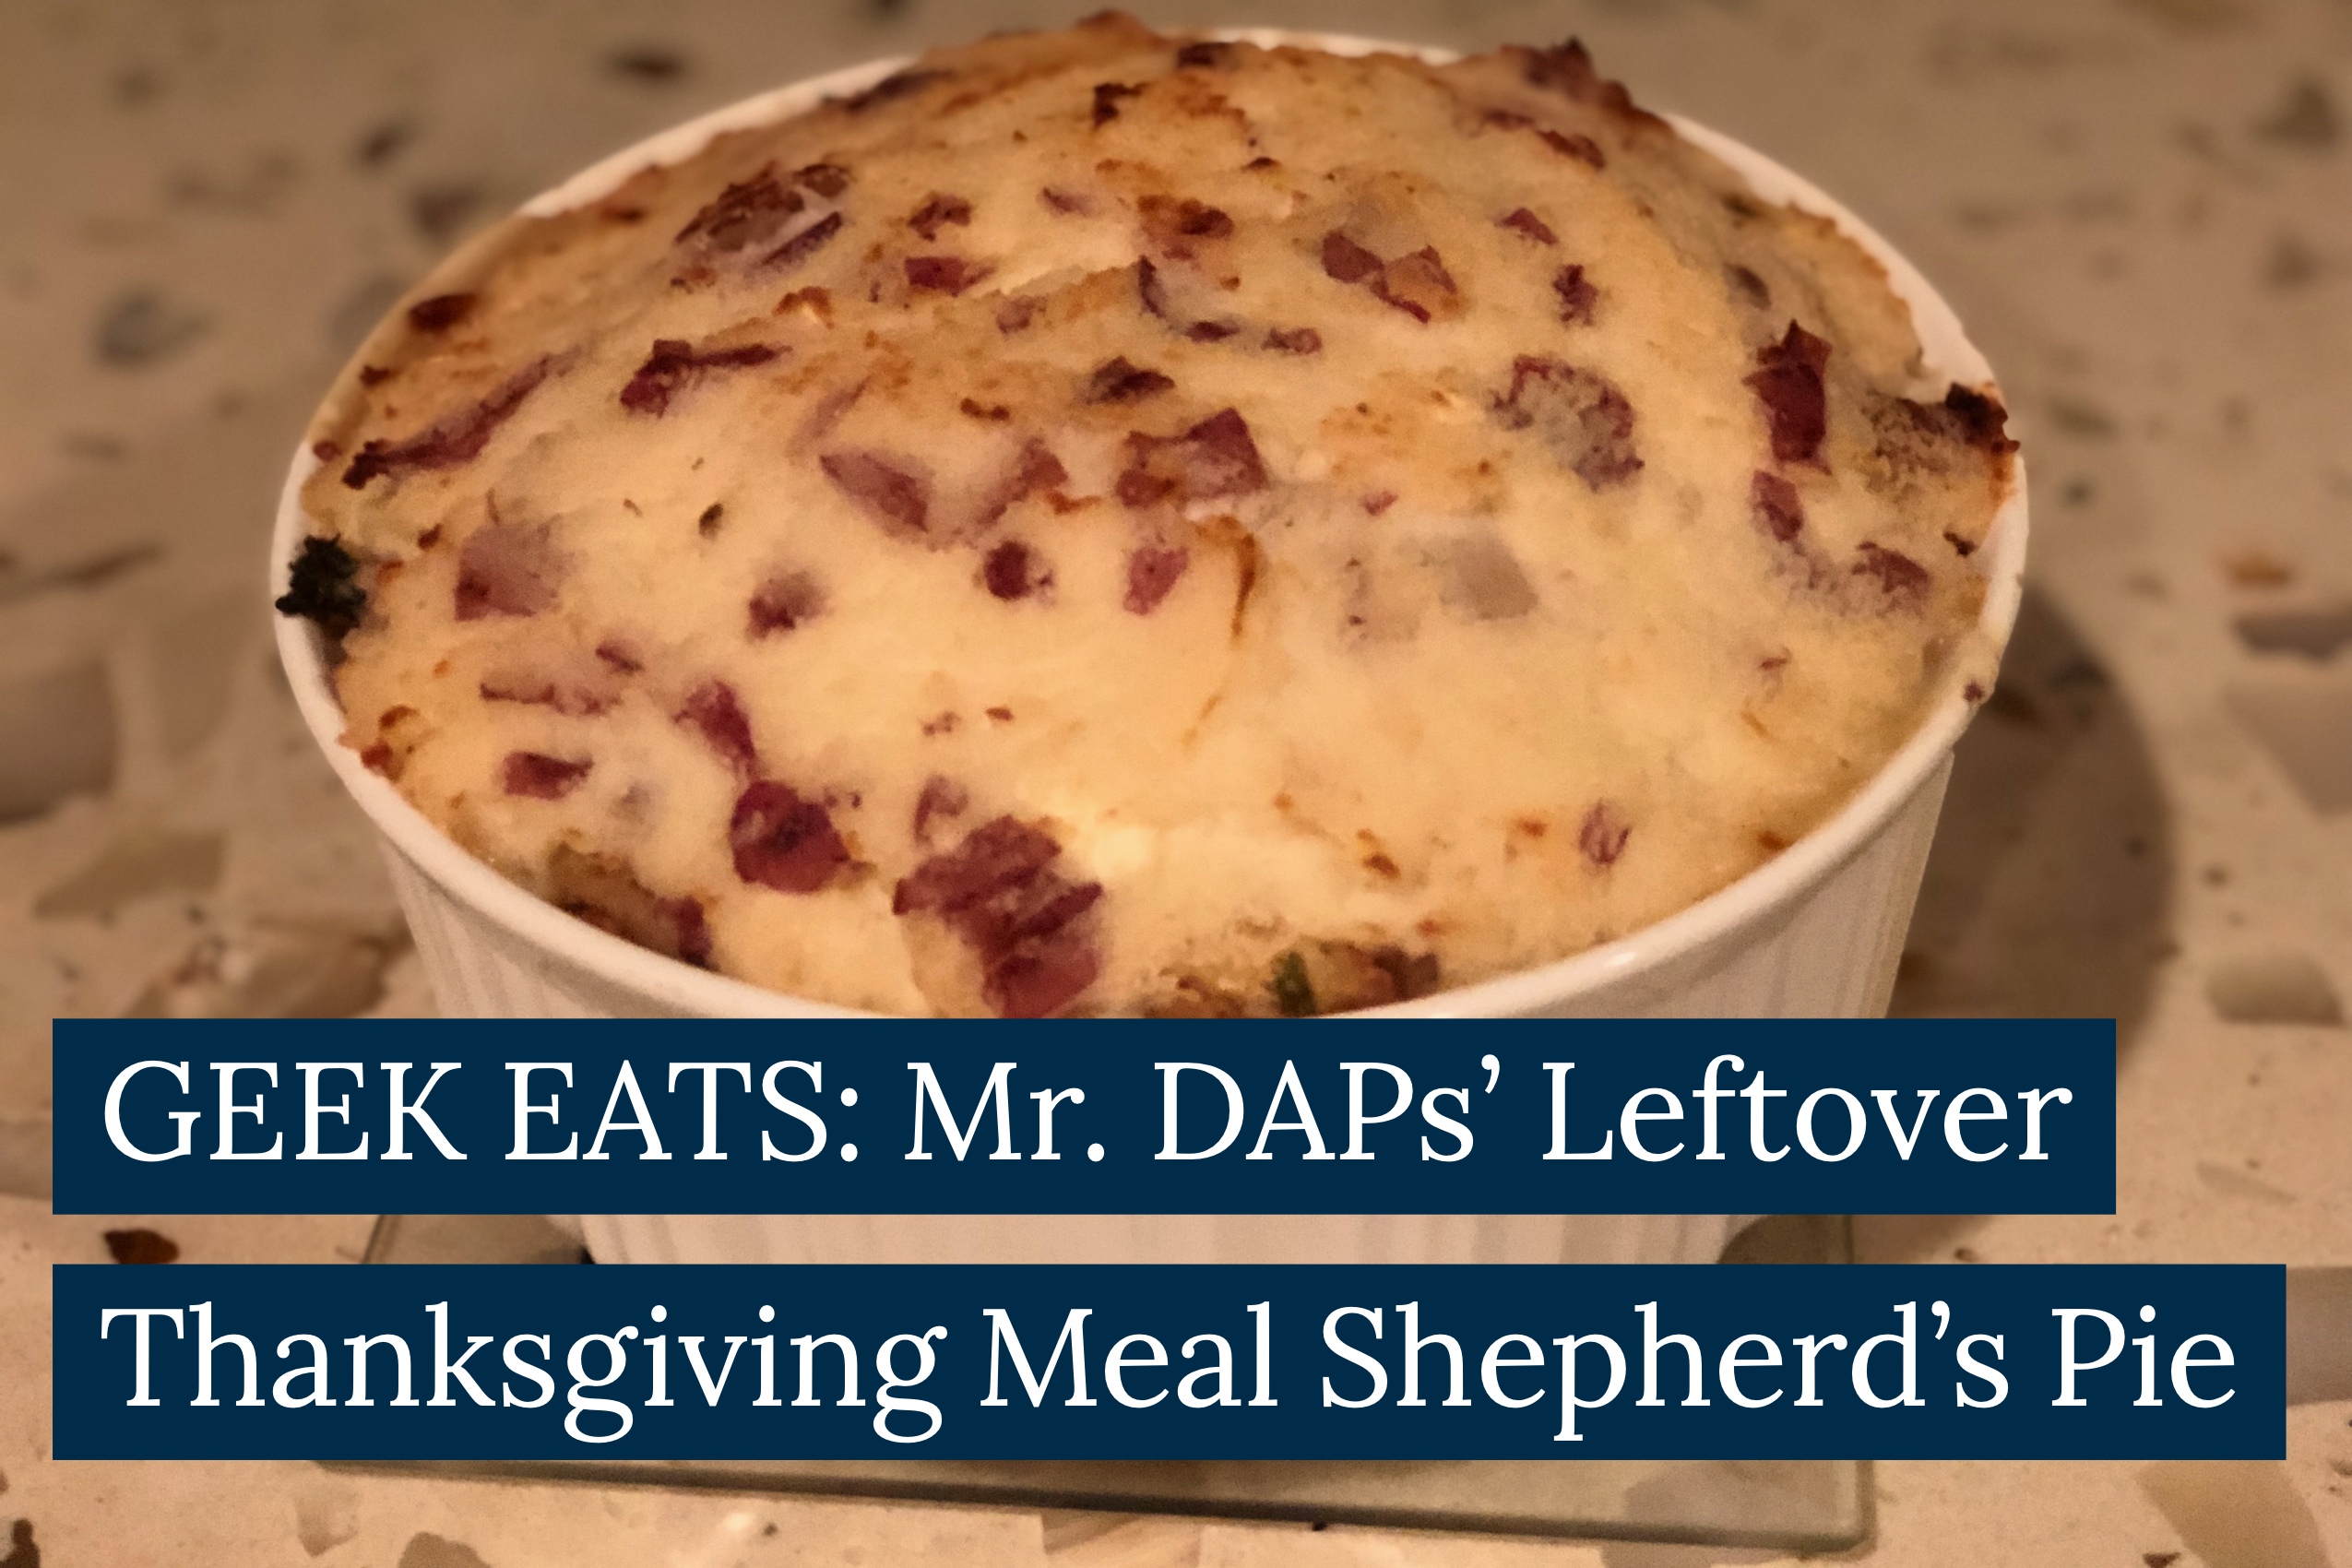 GEEK EATS: Leftover Thanksgiving Meal Shepherd's Pie